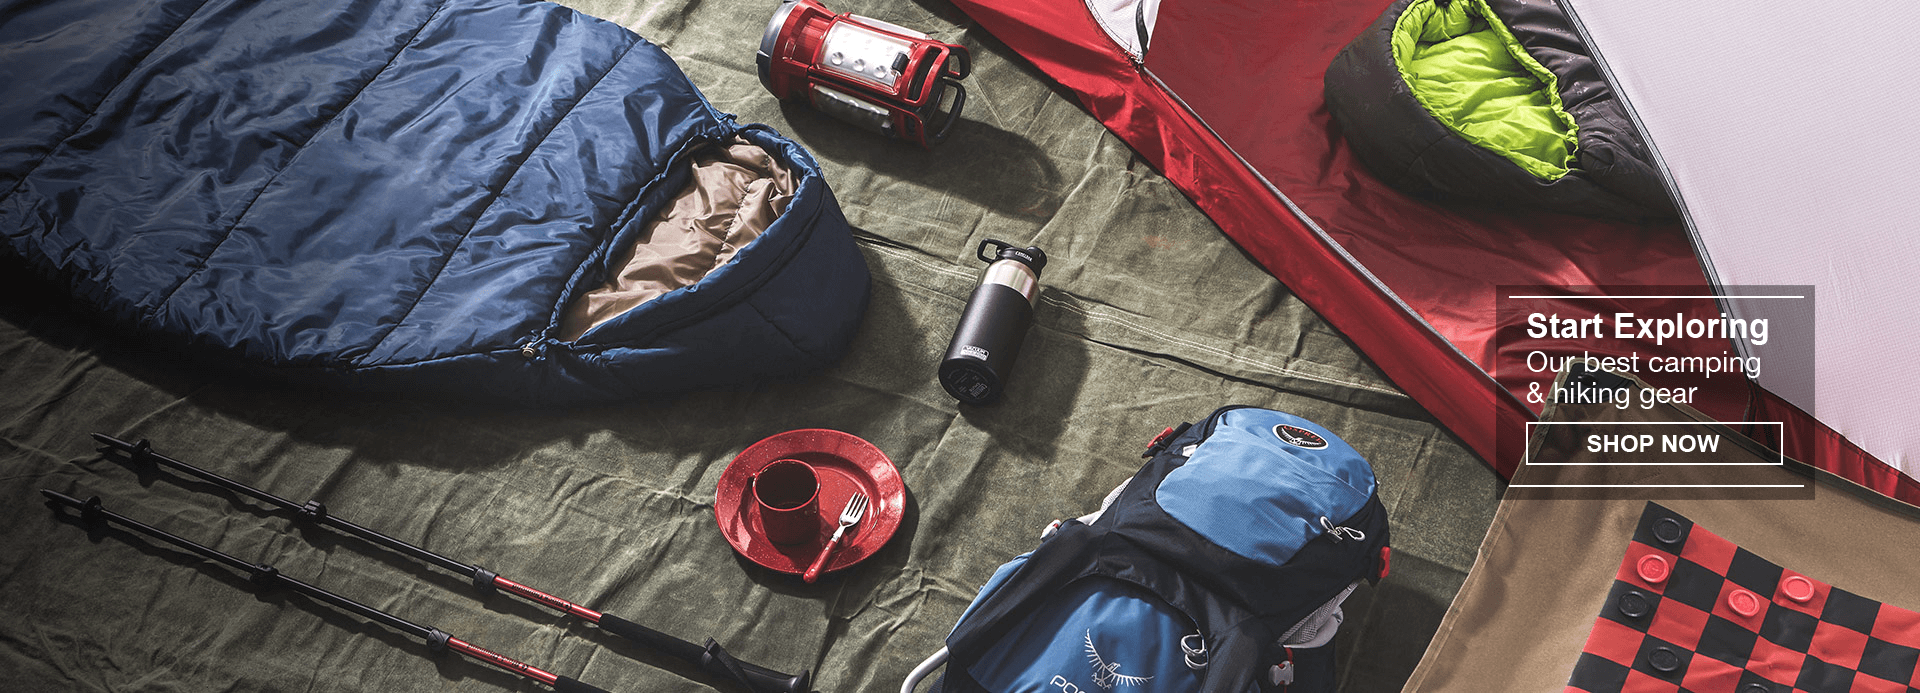 Camping and hiking gear in Outdoor Recreation on Amazon.com